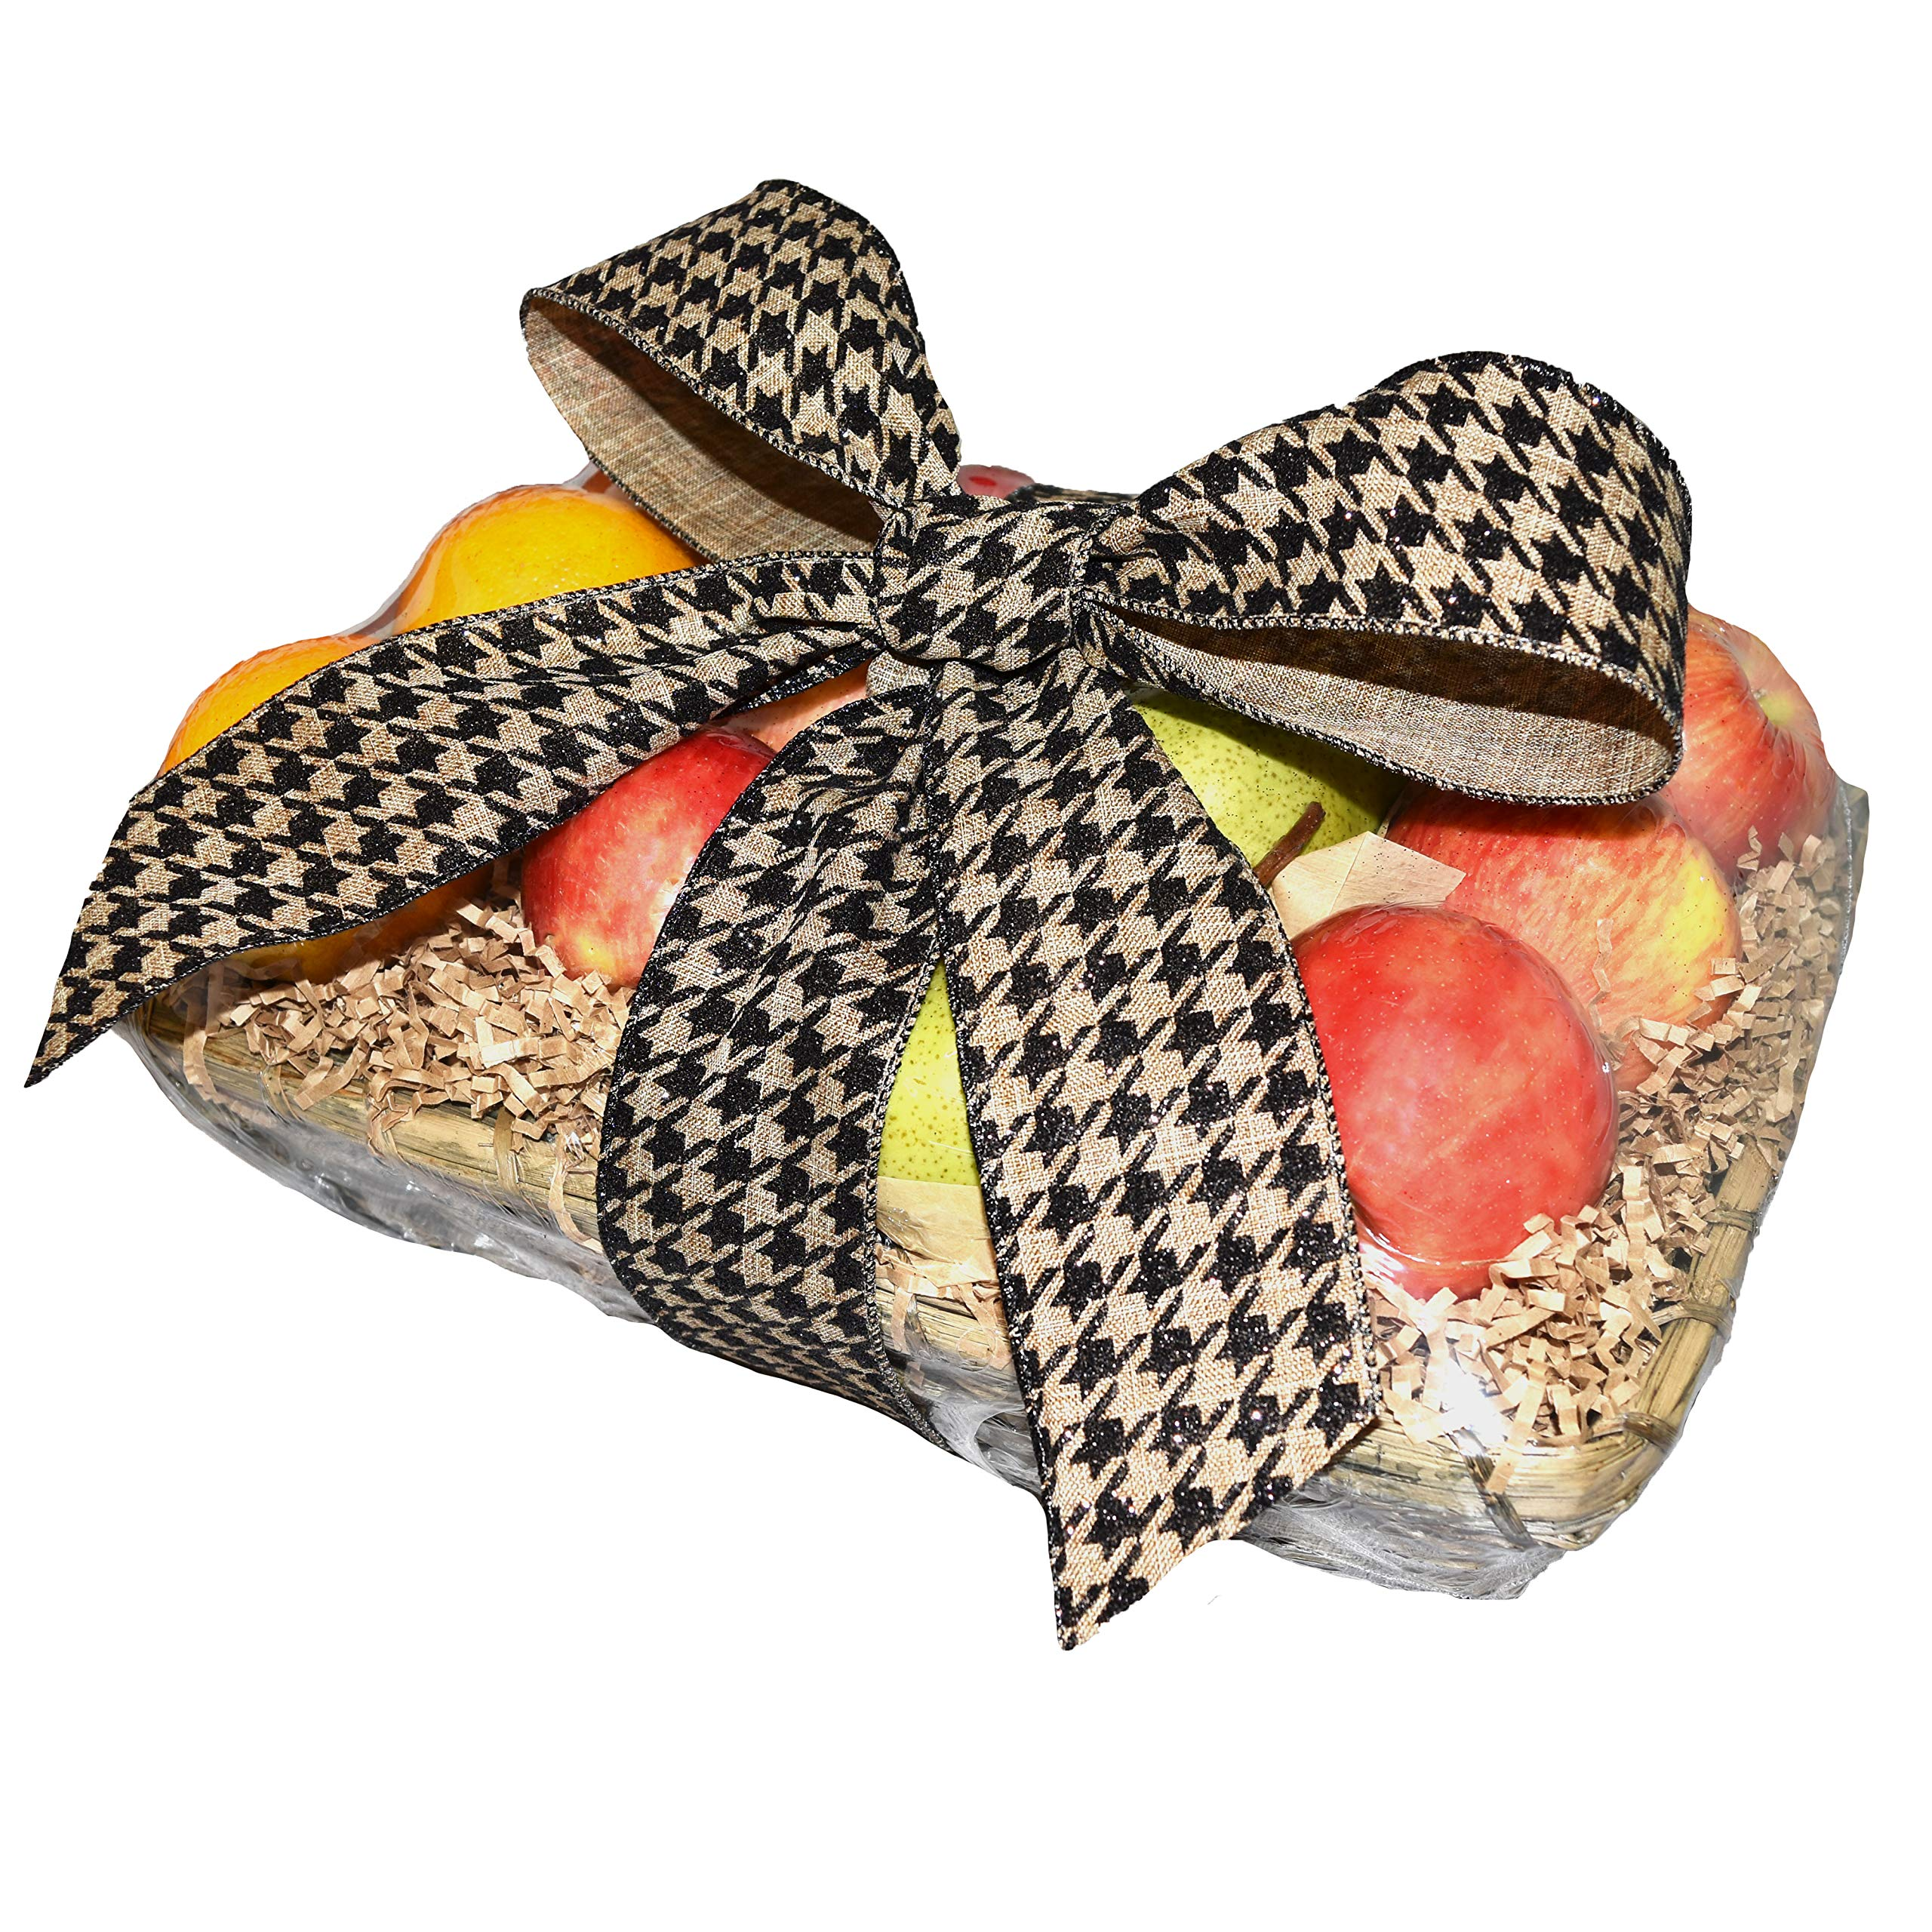 12-Piece Premium Signature Orchard Fruit Basket